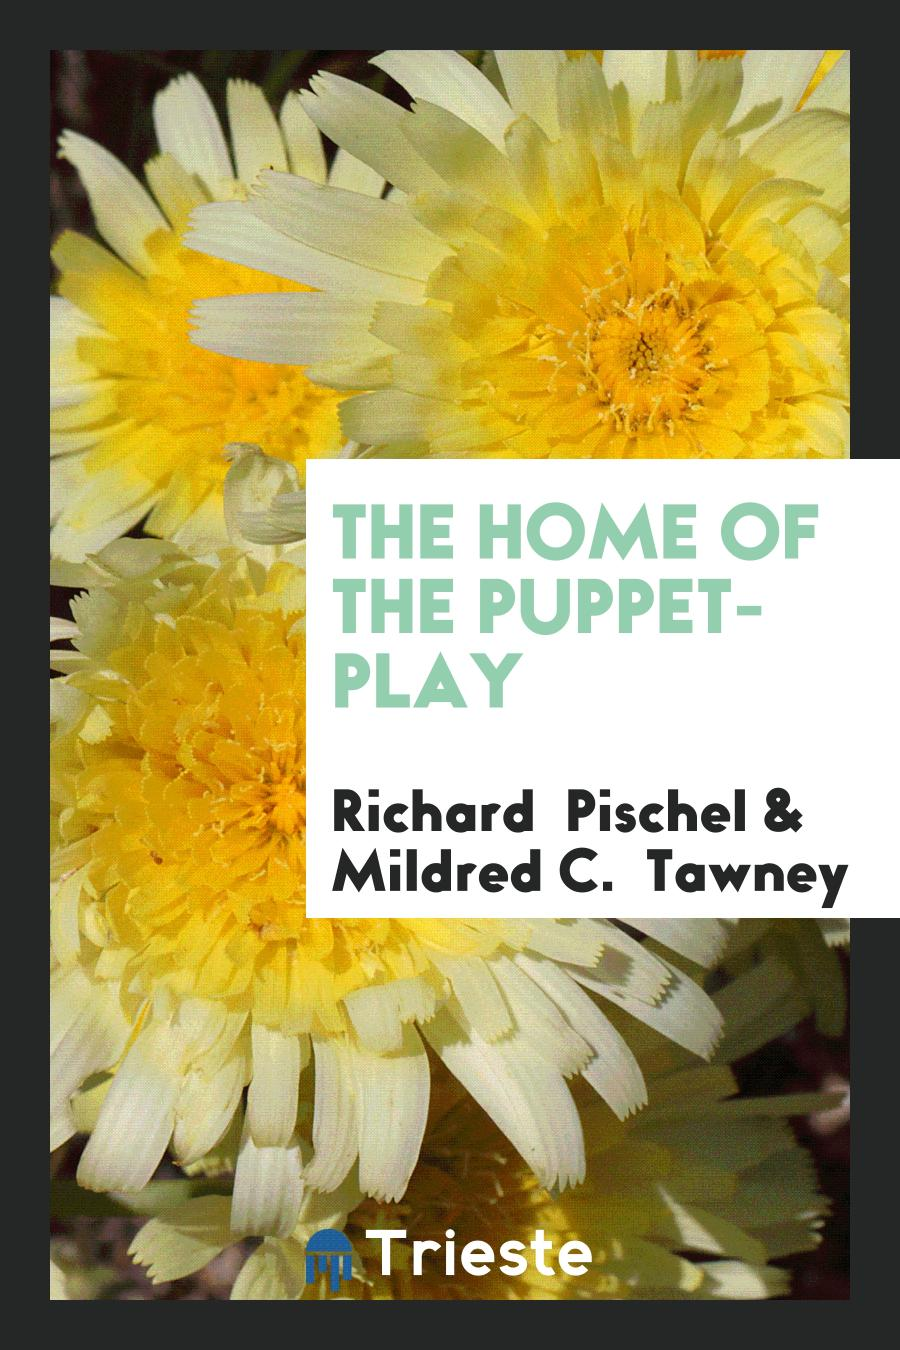 The Home of the Puppet-play